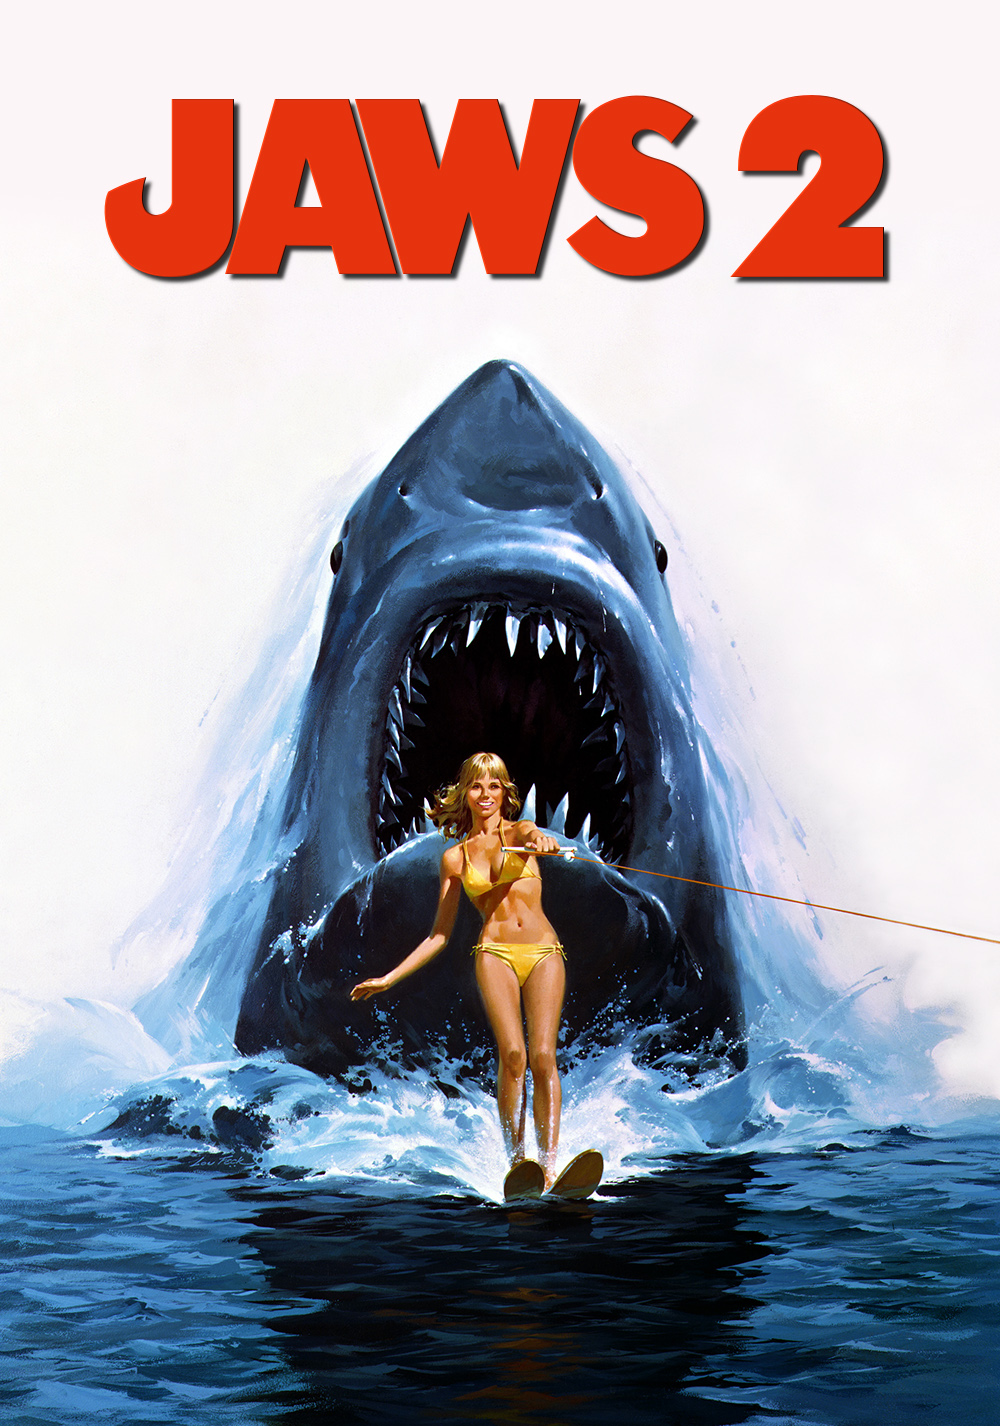 jaws_2_poster_1978_01.jpg